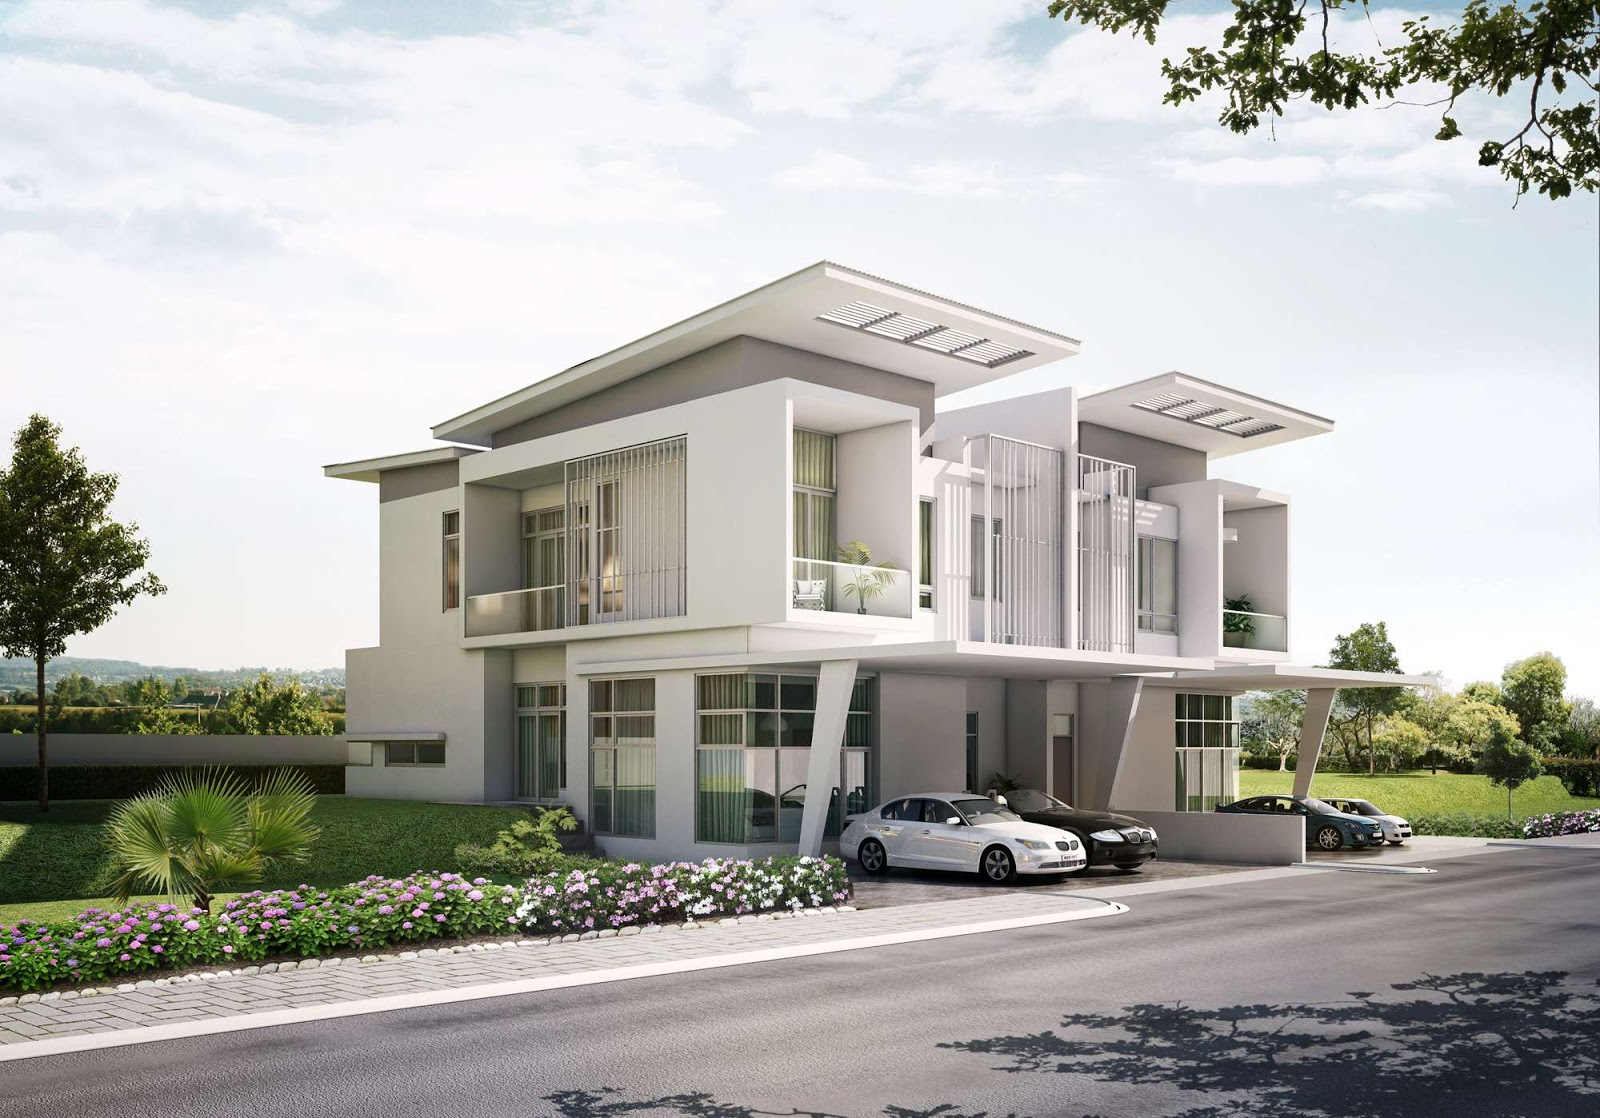 New home designs latest singapore modern homes exterior for House outside color design